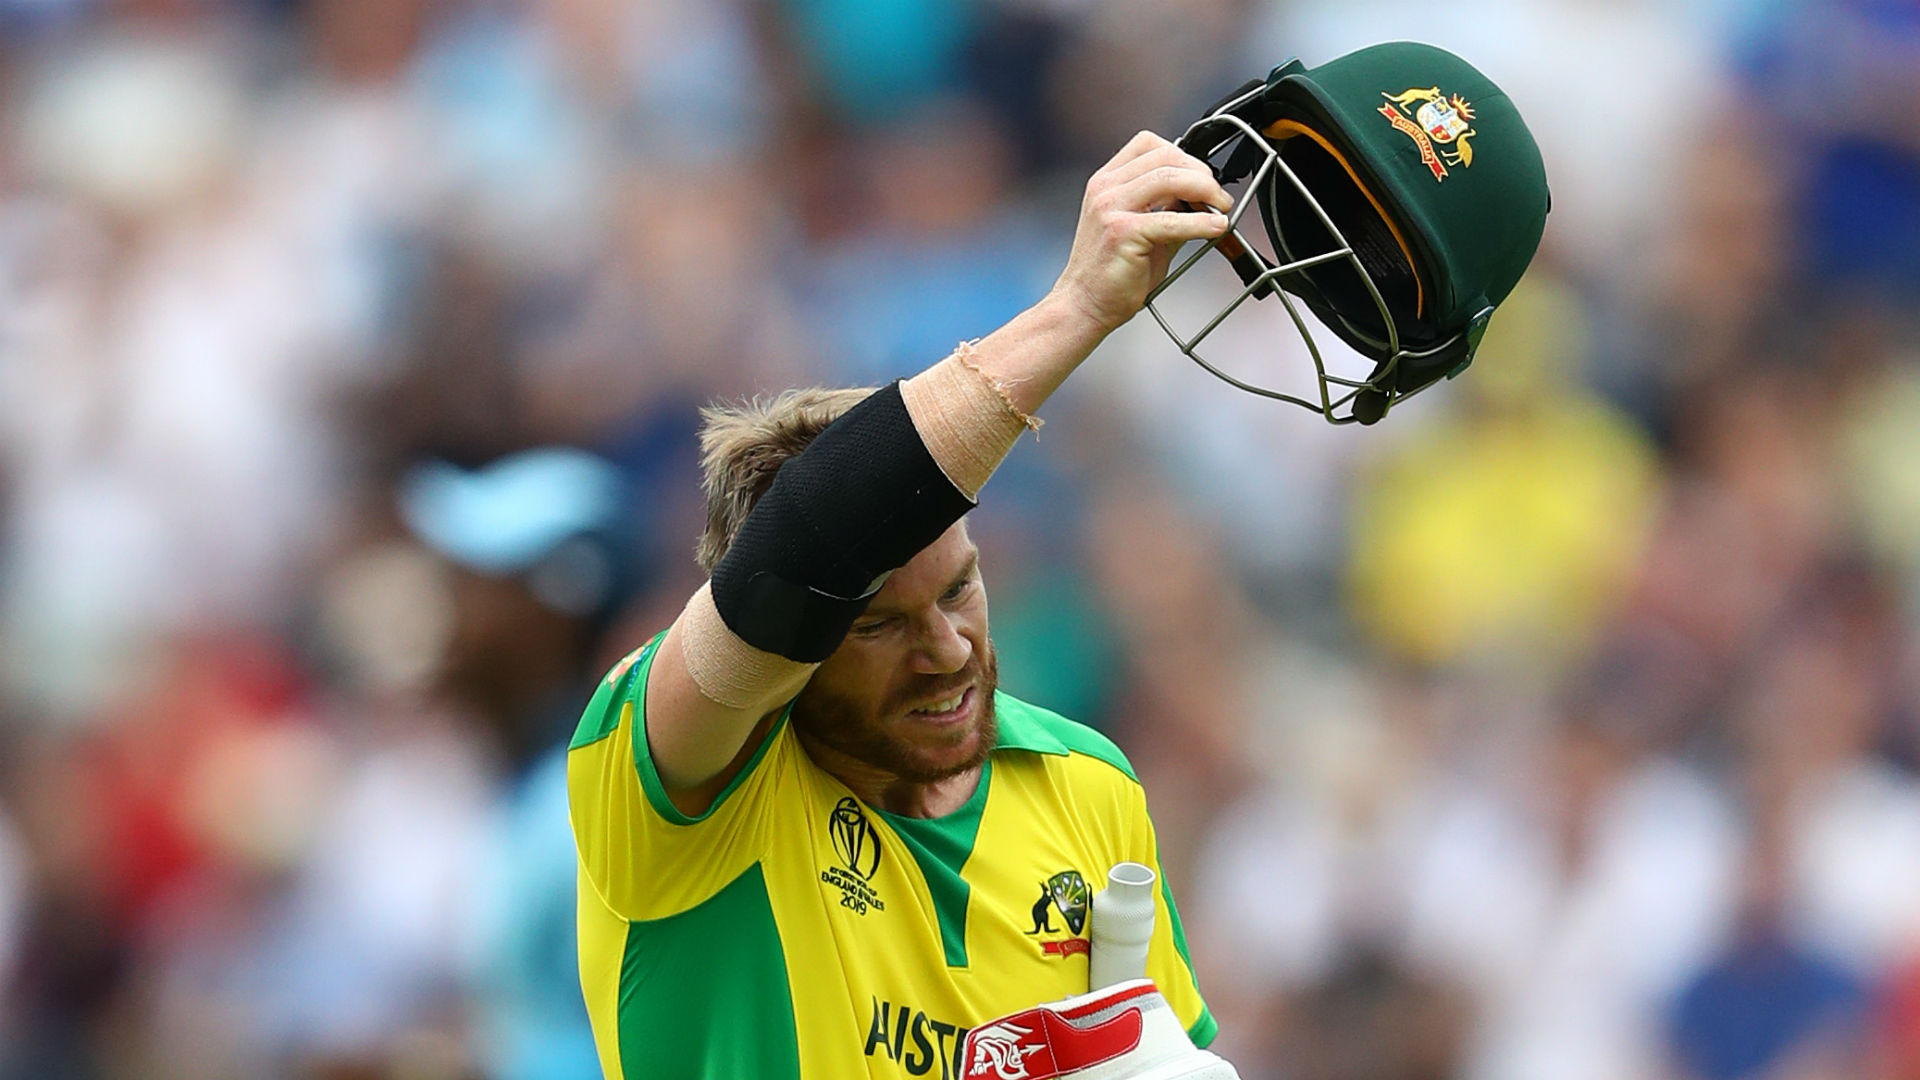 Smith and Warner booed by England fans at Lord's